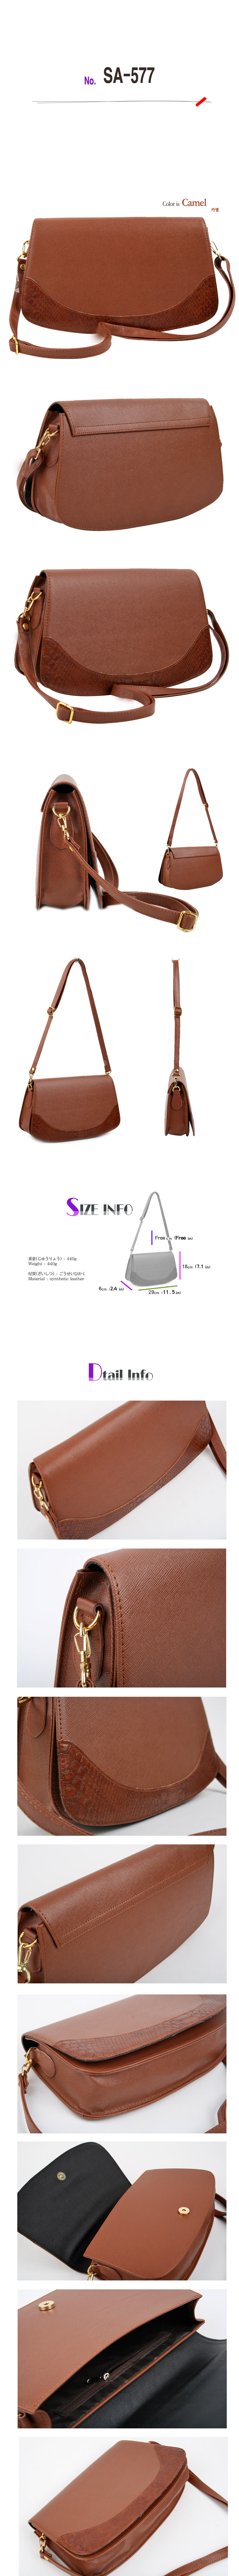 handbag no.SA-577view